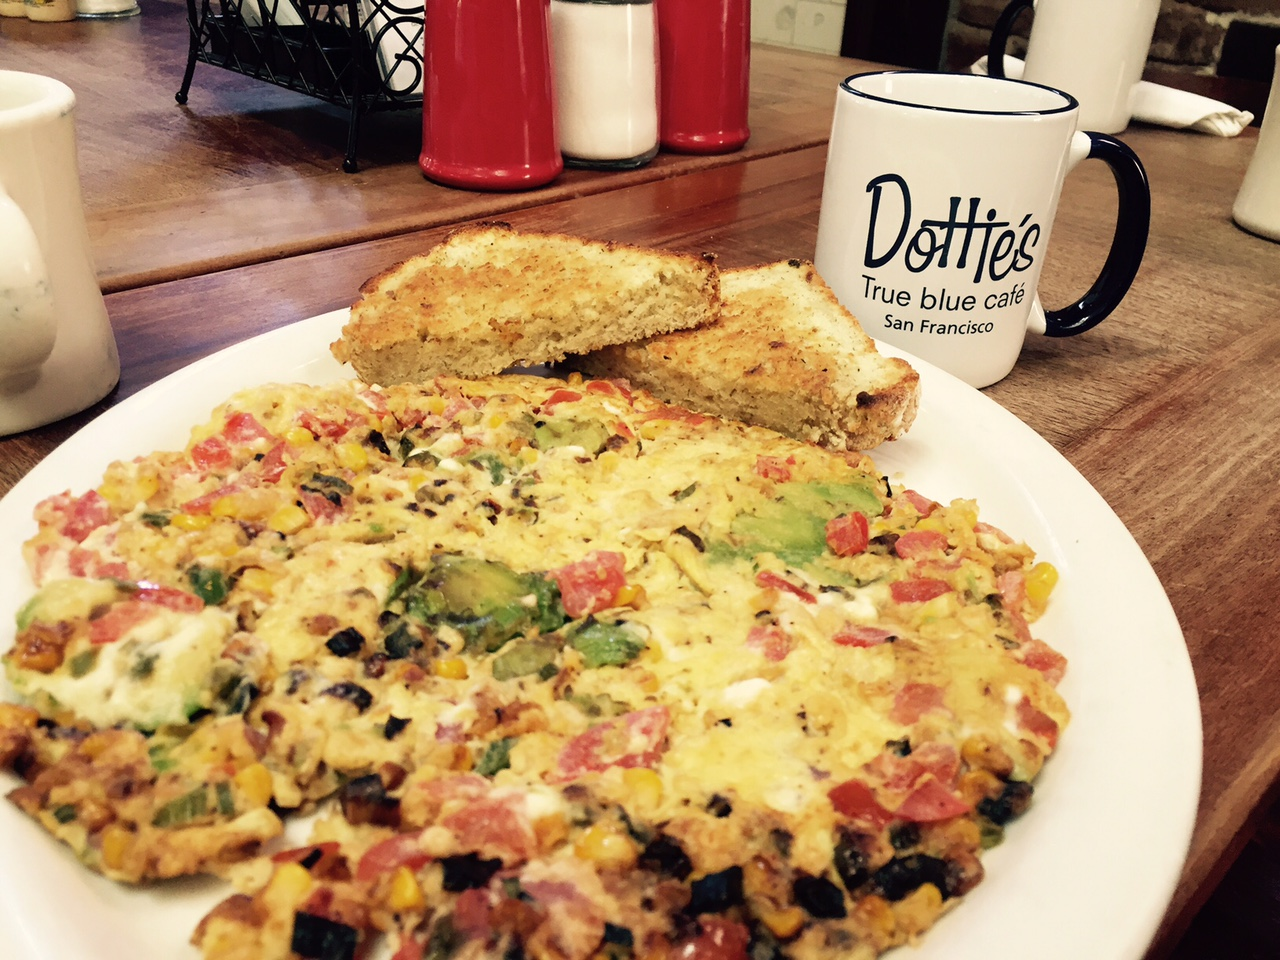 The scramble at Dottie's True Blue Cafe.